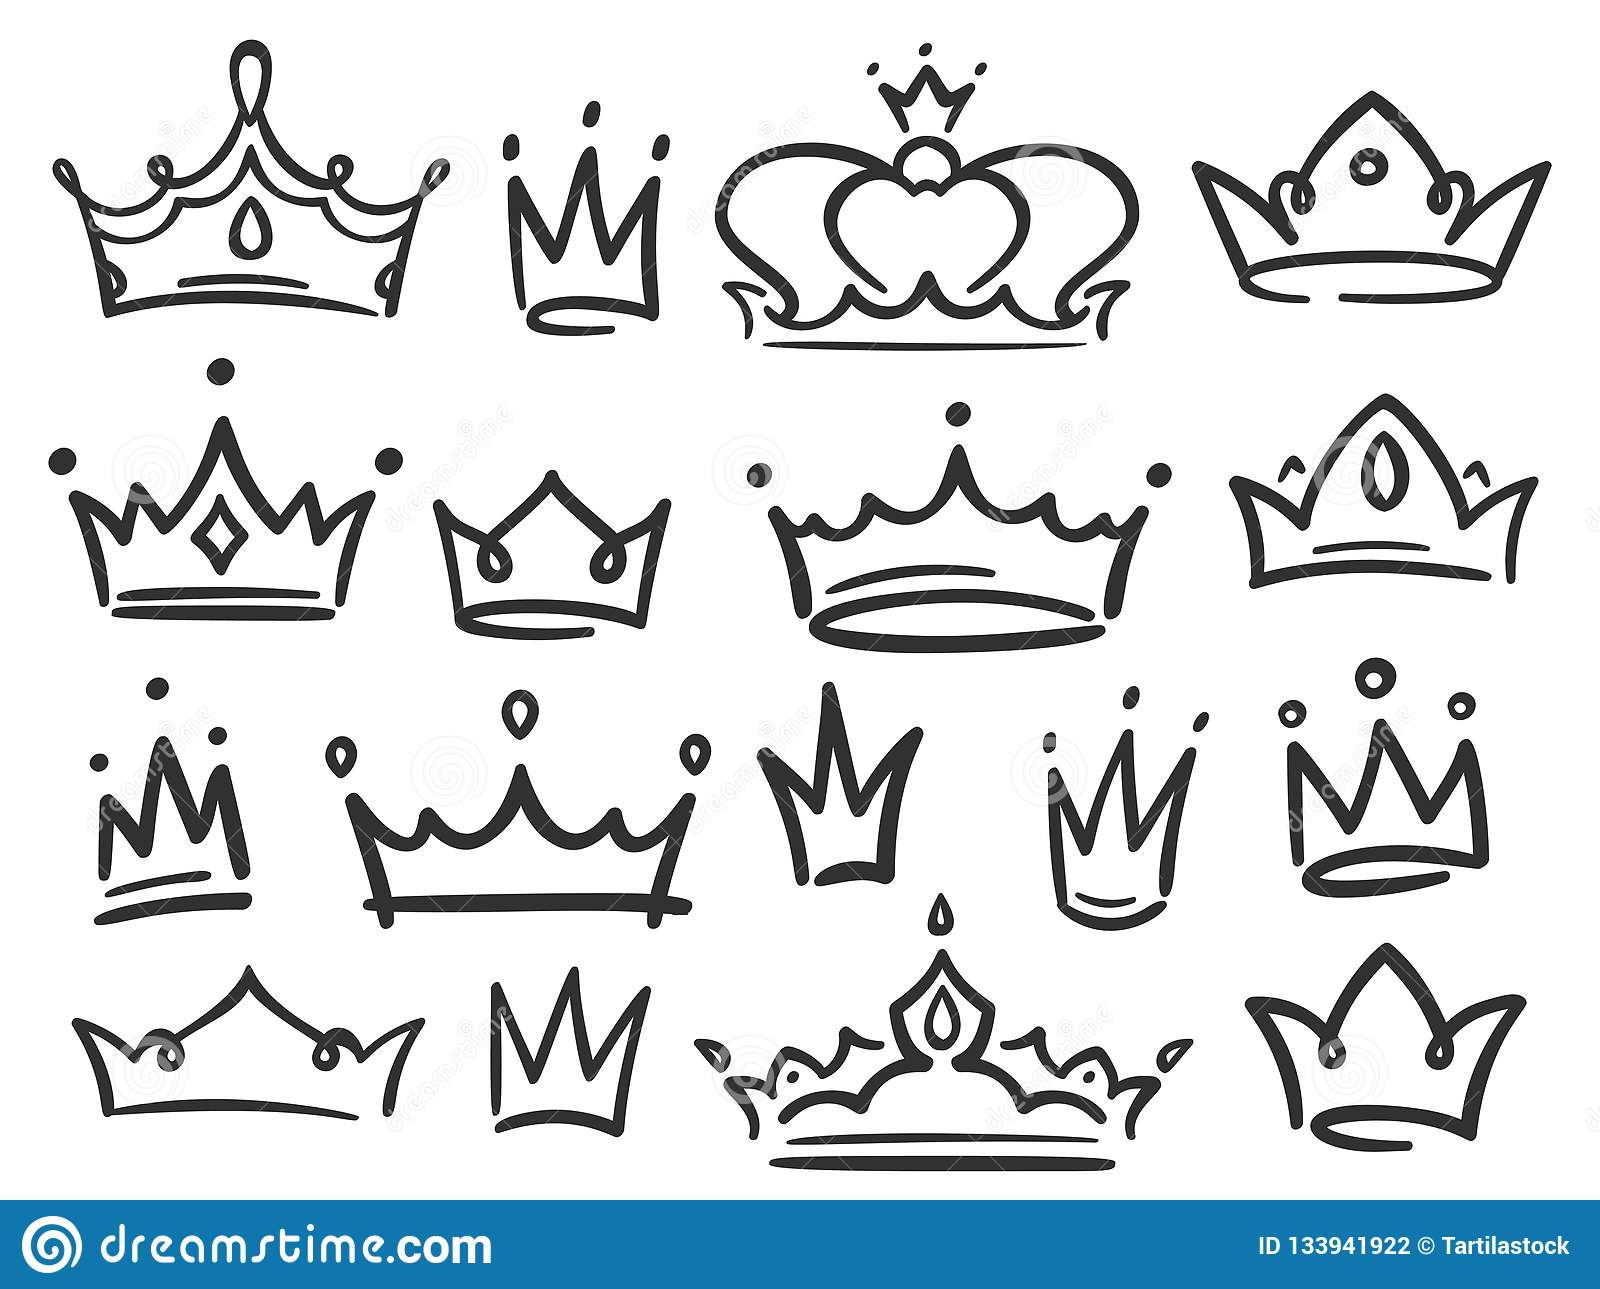 Sketch Crown Simple Graffiti Crowning Elegant Queen Or King Crowns